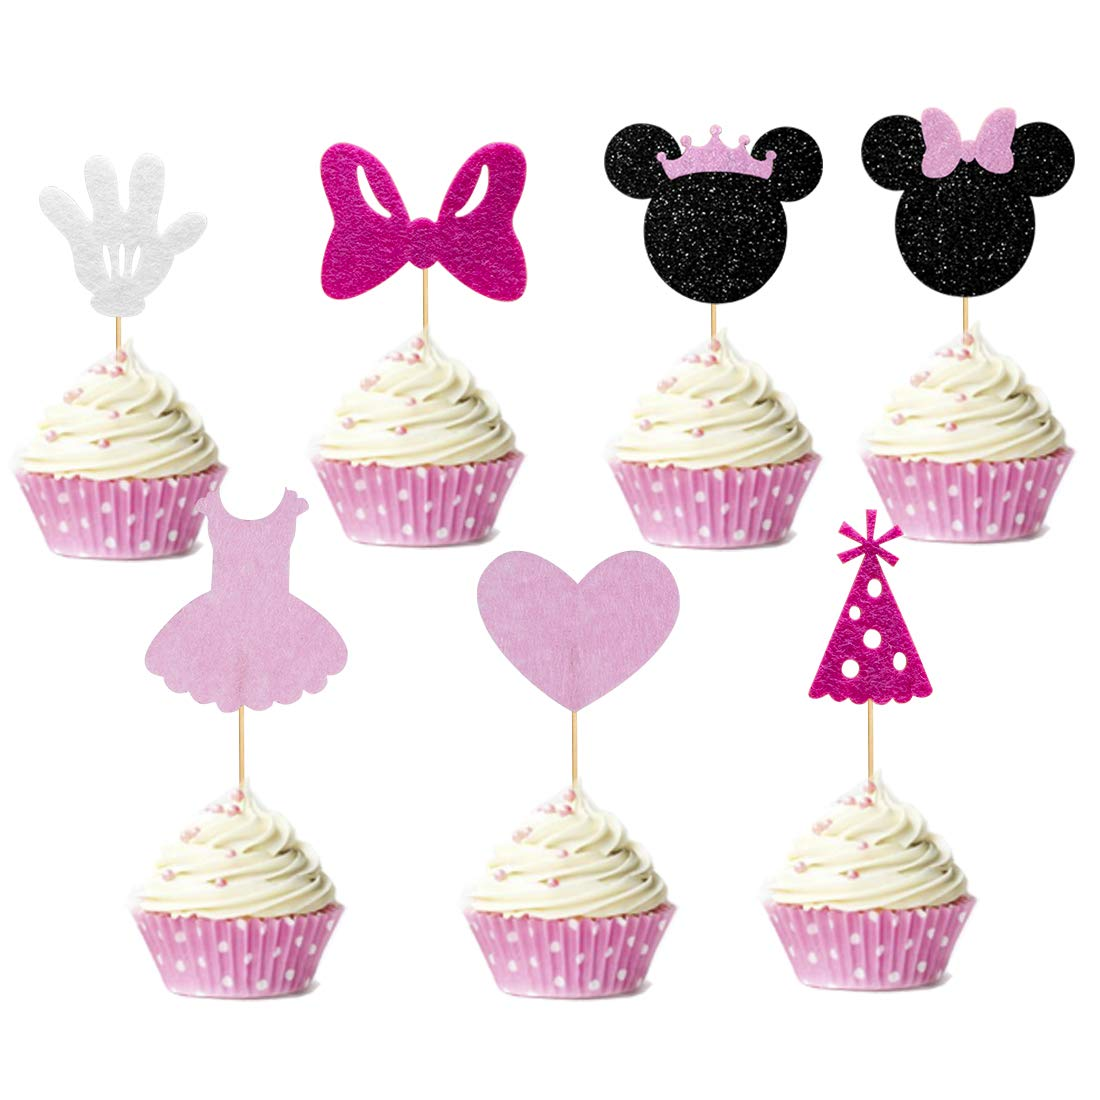 Set of 35 Minnie Inspried Cupcake Toppers Pink Glitter Minnie Girls Cake Food Decorations Minnie Themed Birthday Baby Shower Party Supplies Baby Kids